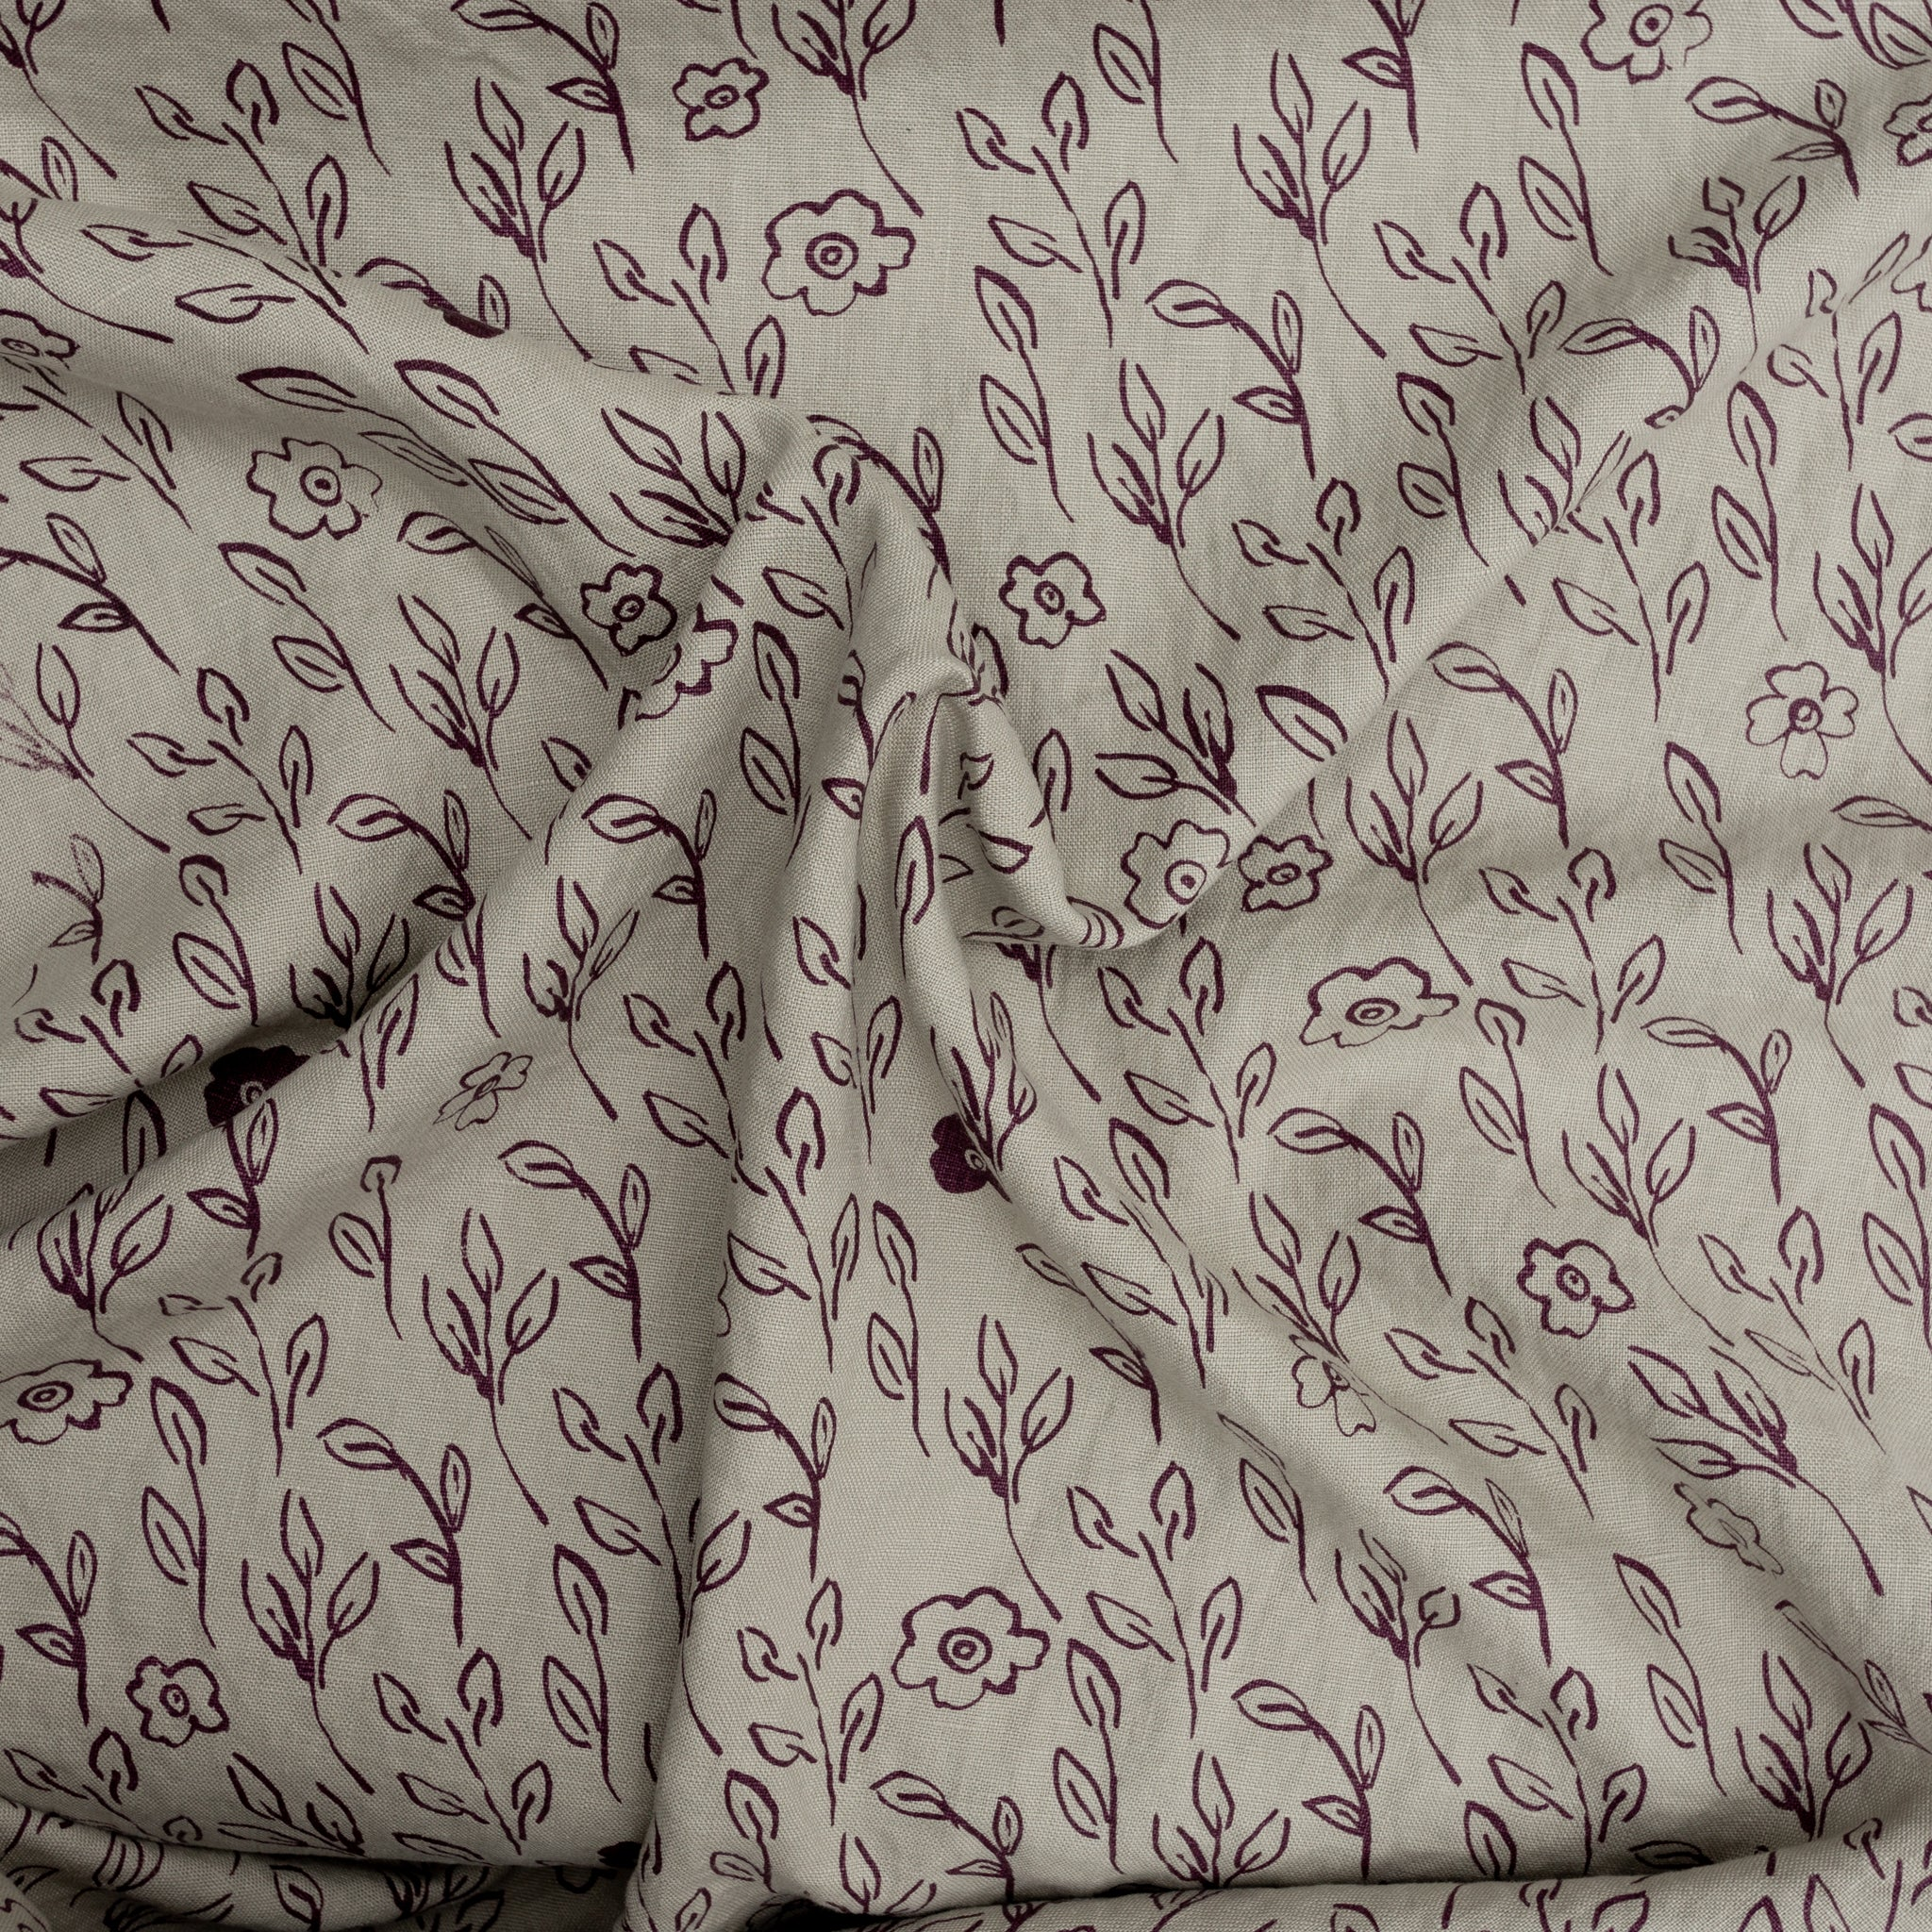 Briar printed in Muscadine on Sage linen by Sara Parker Textiles